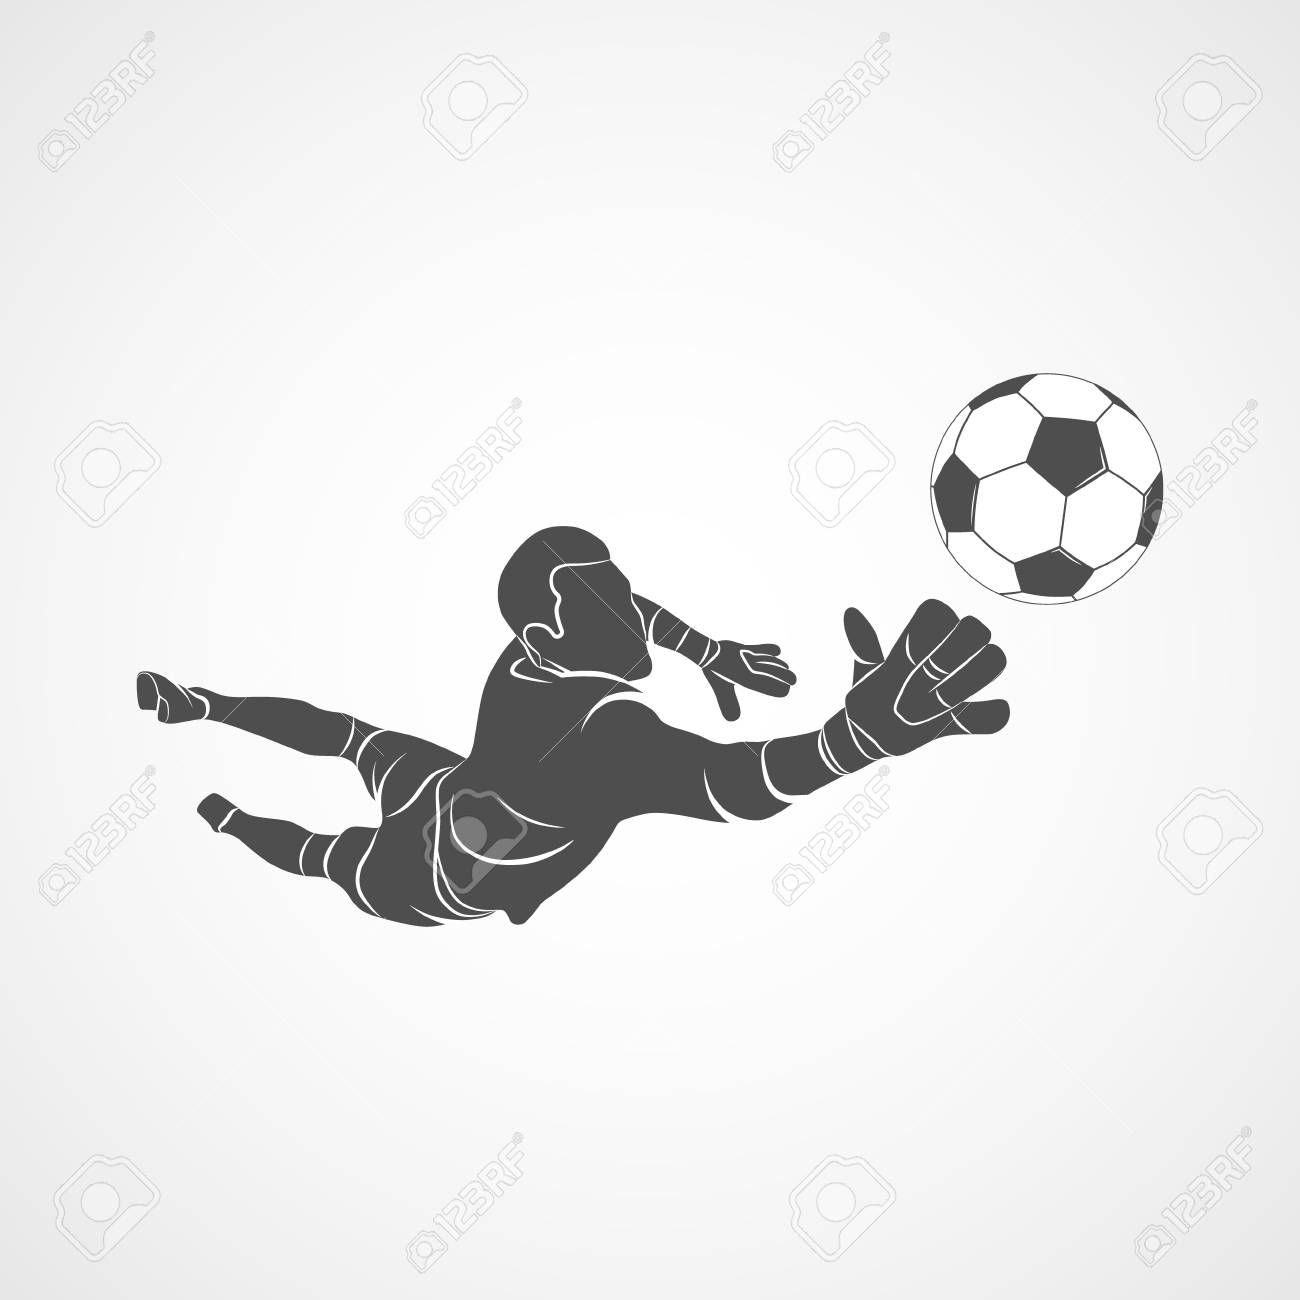 Silhouette Football Goalkeeper Is Jumping For The Ball Soccer Soccer Drawing Goalkeeper Soccer Tattoos